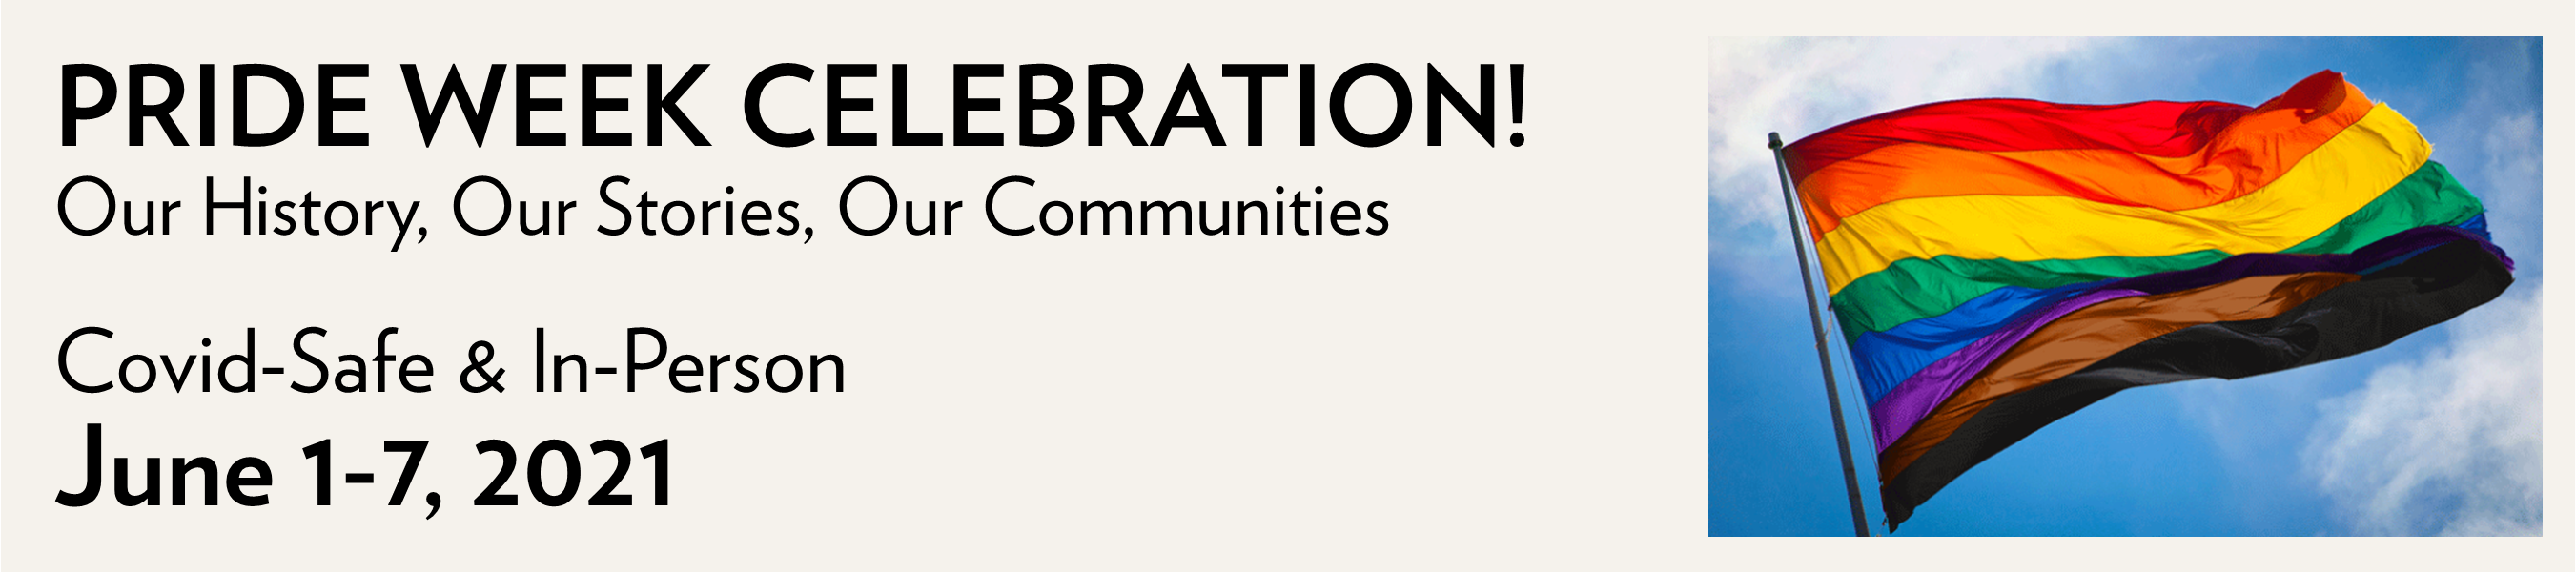 Pride Week Celebration! Our Histories. Our Stories. Our Communities. Covid-Safe and In-Person. June 1-7, 2021. Click-seelect for more information.